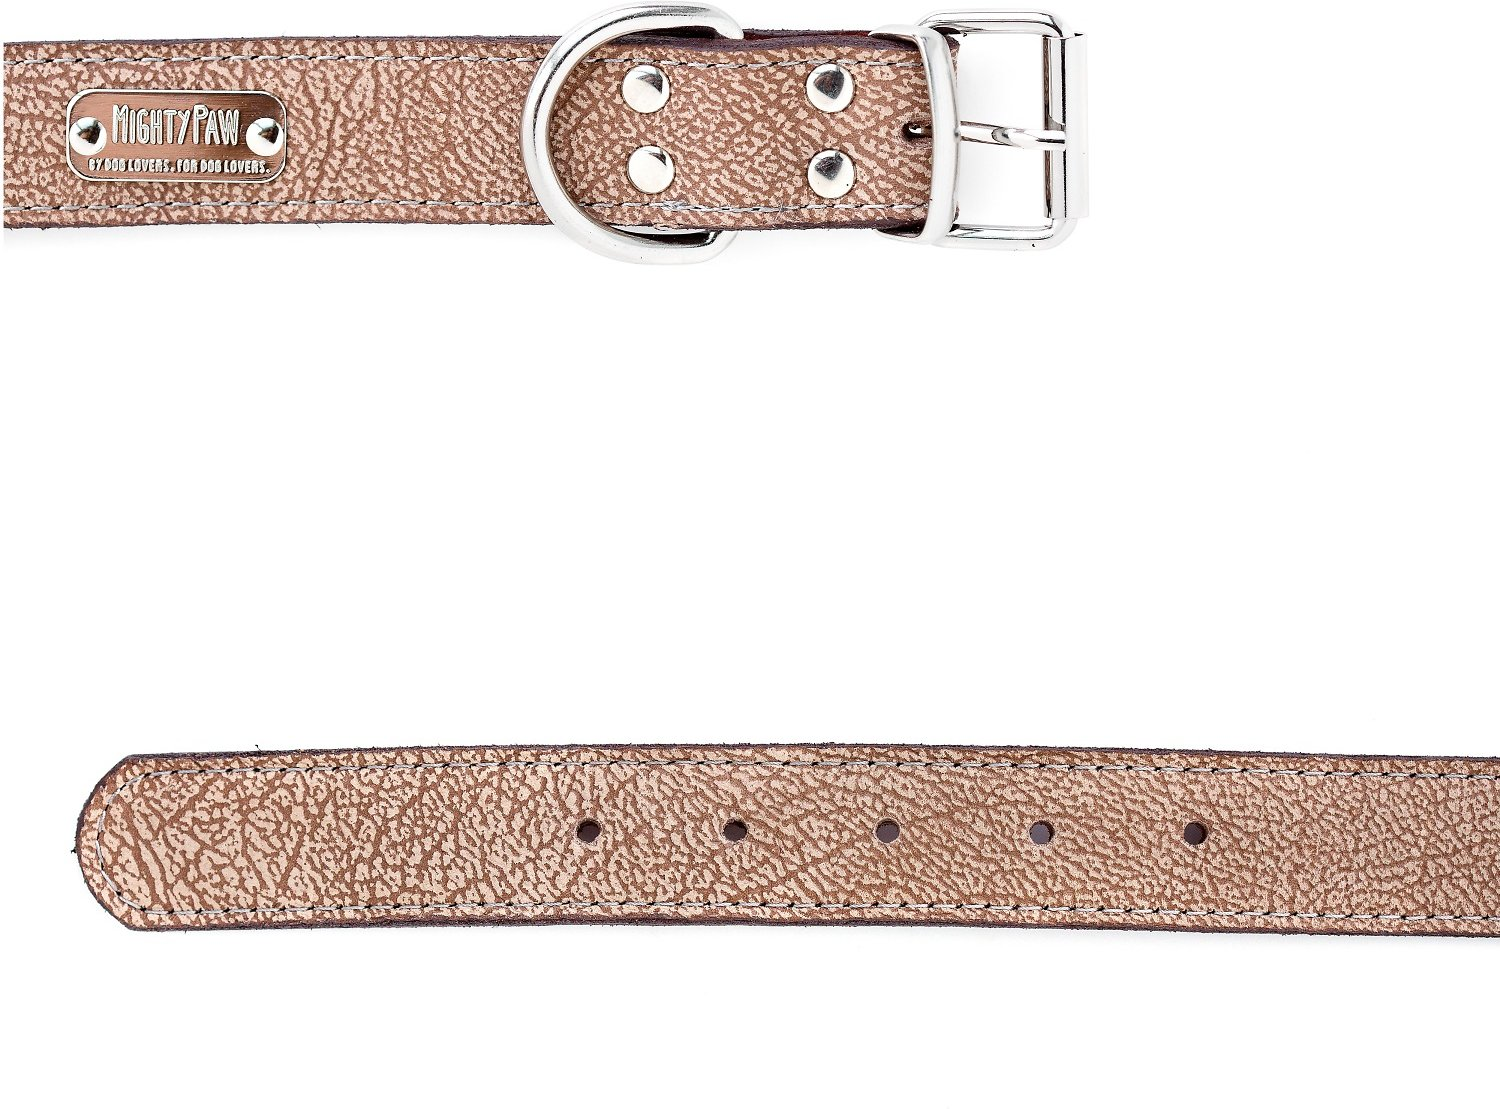 Mighty Paw Leather Dog Leash, Light Brown, Standard Mighty Paw Leather Dog Leash, Light Brown, Standard new foto